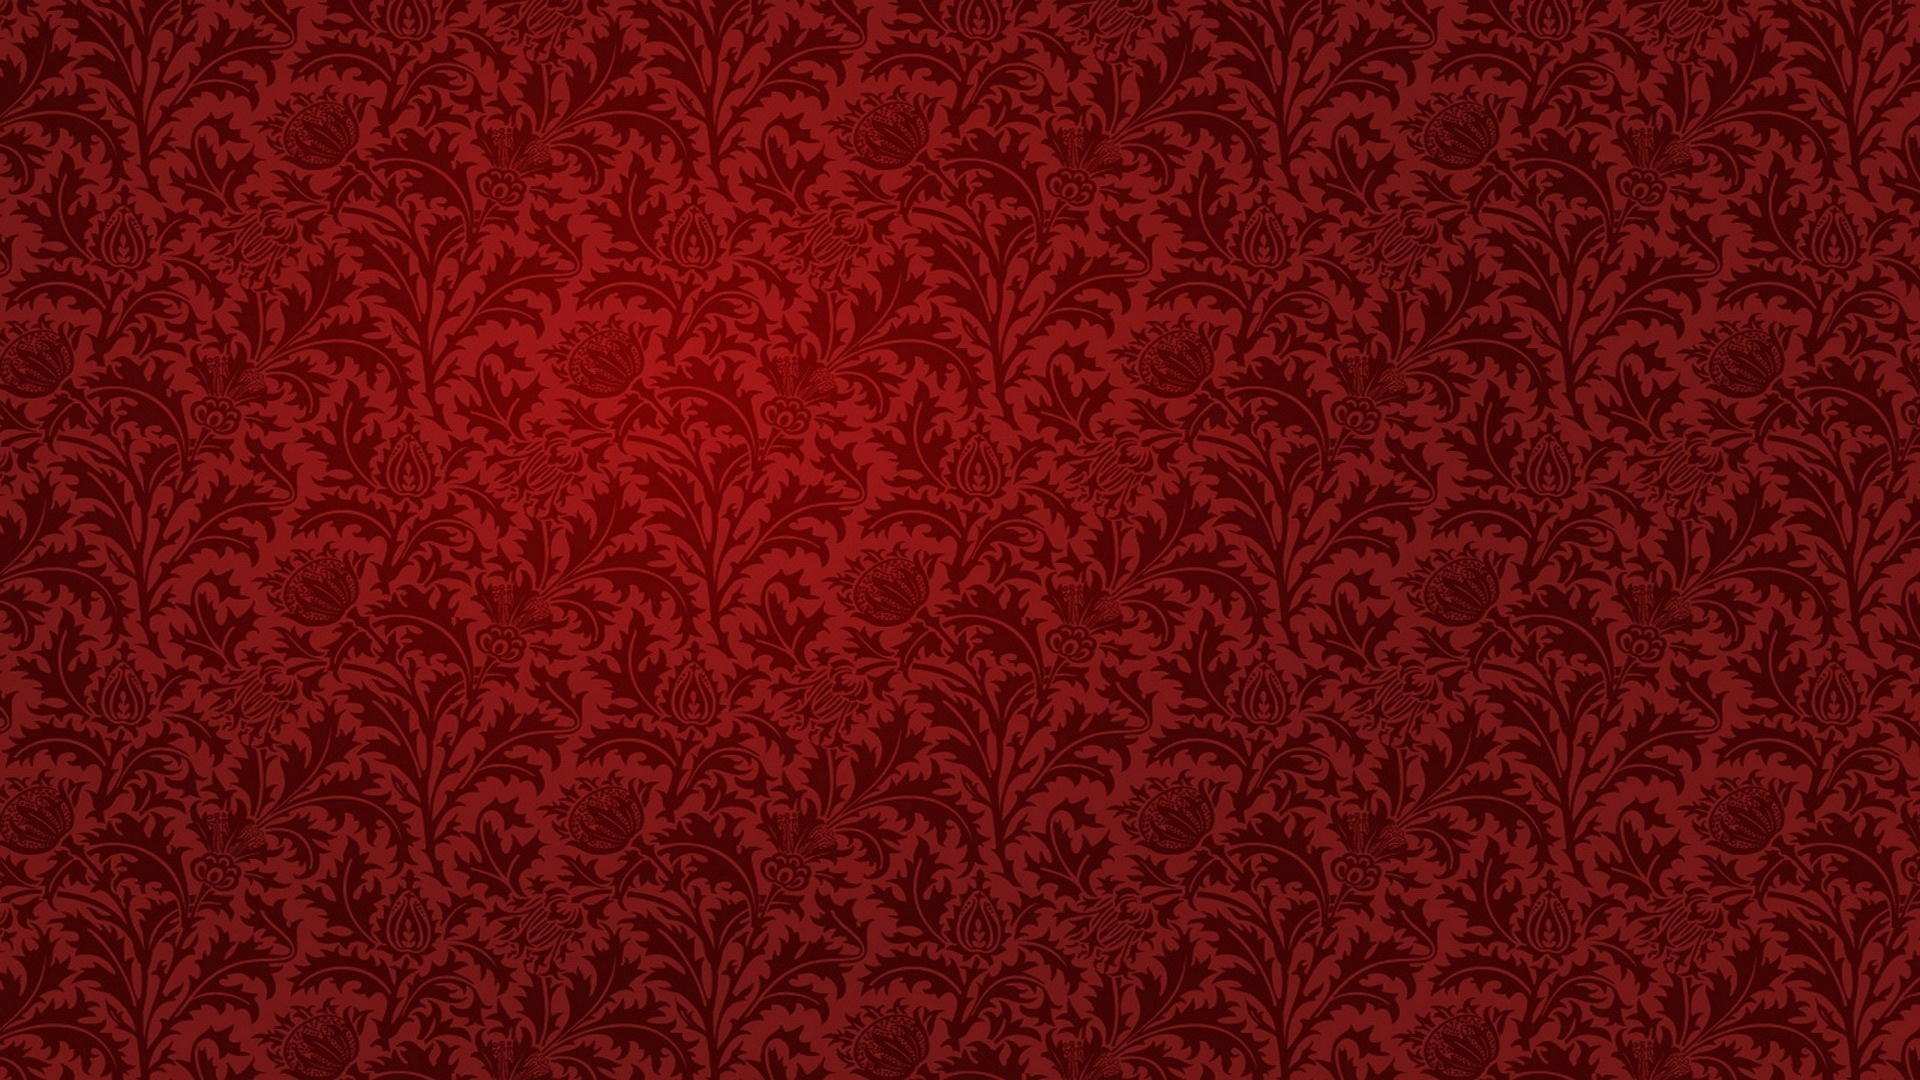 New 3d Wallpapers Free Download For Mobile Pattern Red Wallpapers Hd 6398 Wallpaper Walldiskpaper